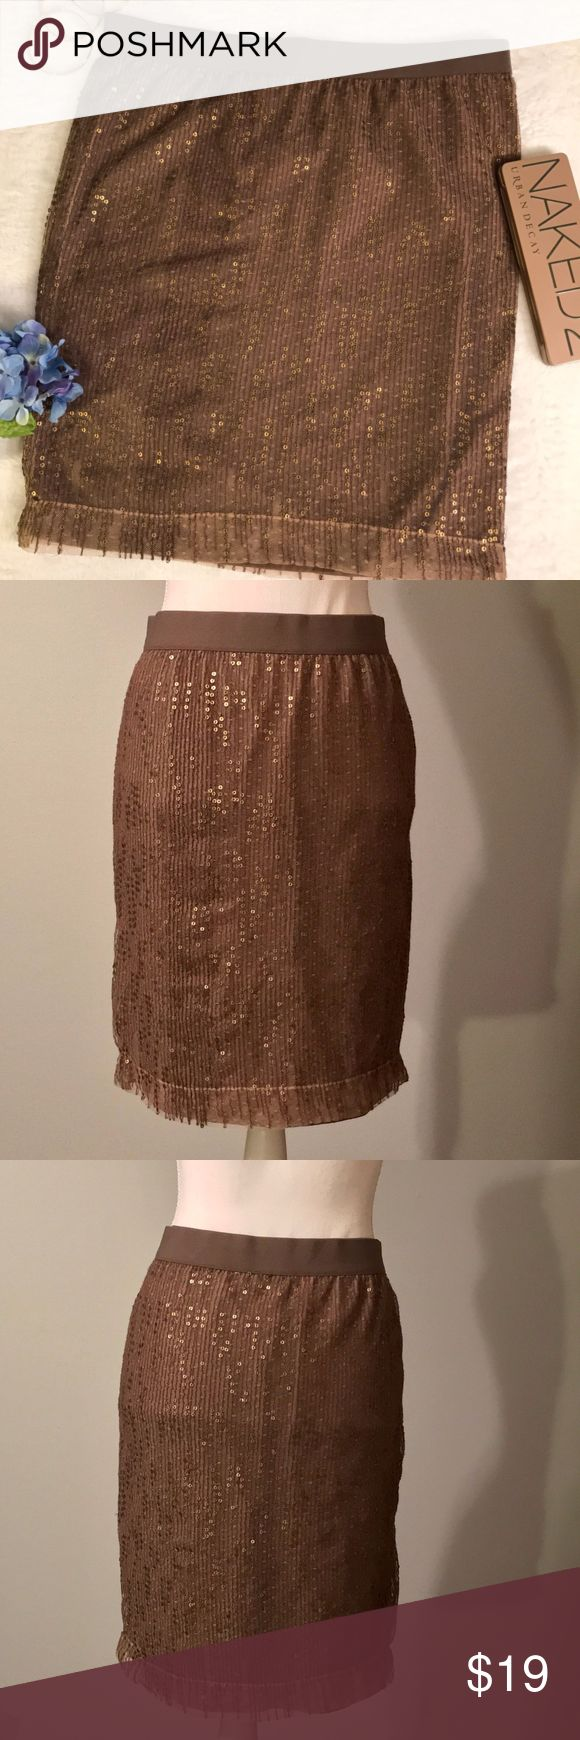 "Gap brown sequin pencil skirt Gap brown sequin pencil skirt. Dark brown pencil skirt. Elastic pull on waist band. Seamless skirt. Brown sheer overlay with gold tone shimmery sequin detail. Dark brown lining. Size 6. EUC, excellent used condition. Measurements taken laid flat. 16"" waist, 21"" length. GAP Skirts Pencil"